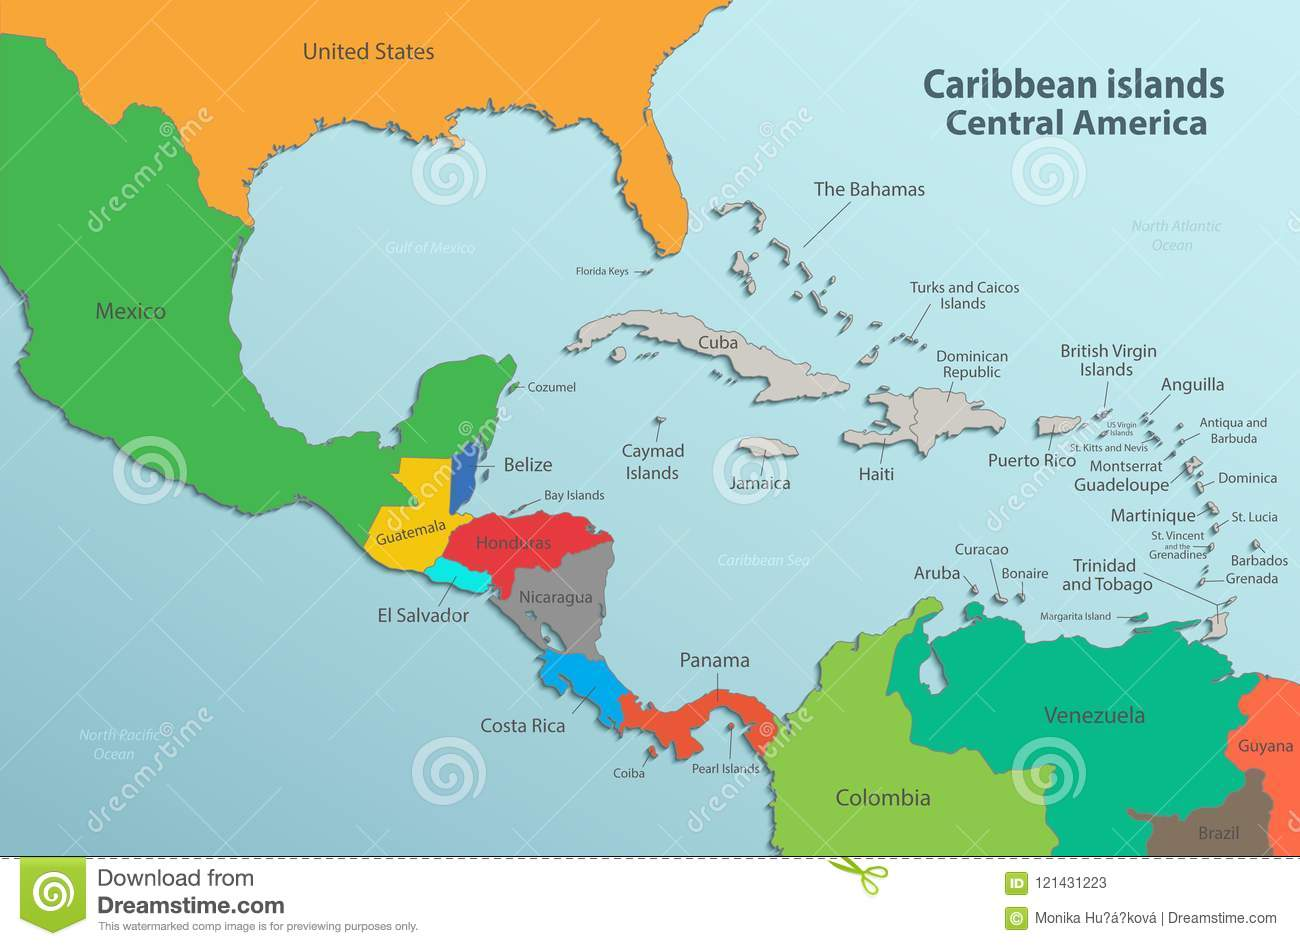 Caribbean Islands Central America Map Card Colors 3D Stock ... on usa and central american map, american and central american map, southern and central american map,